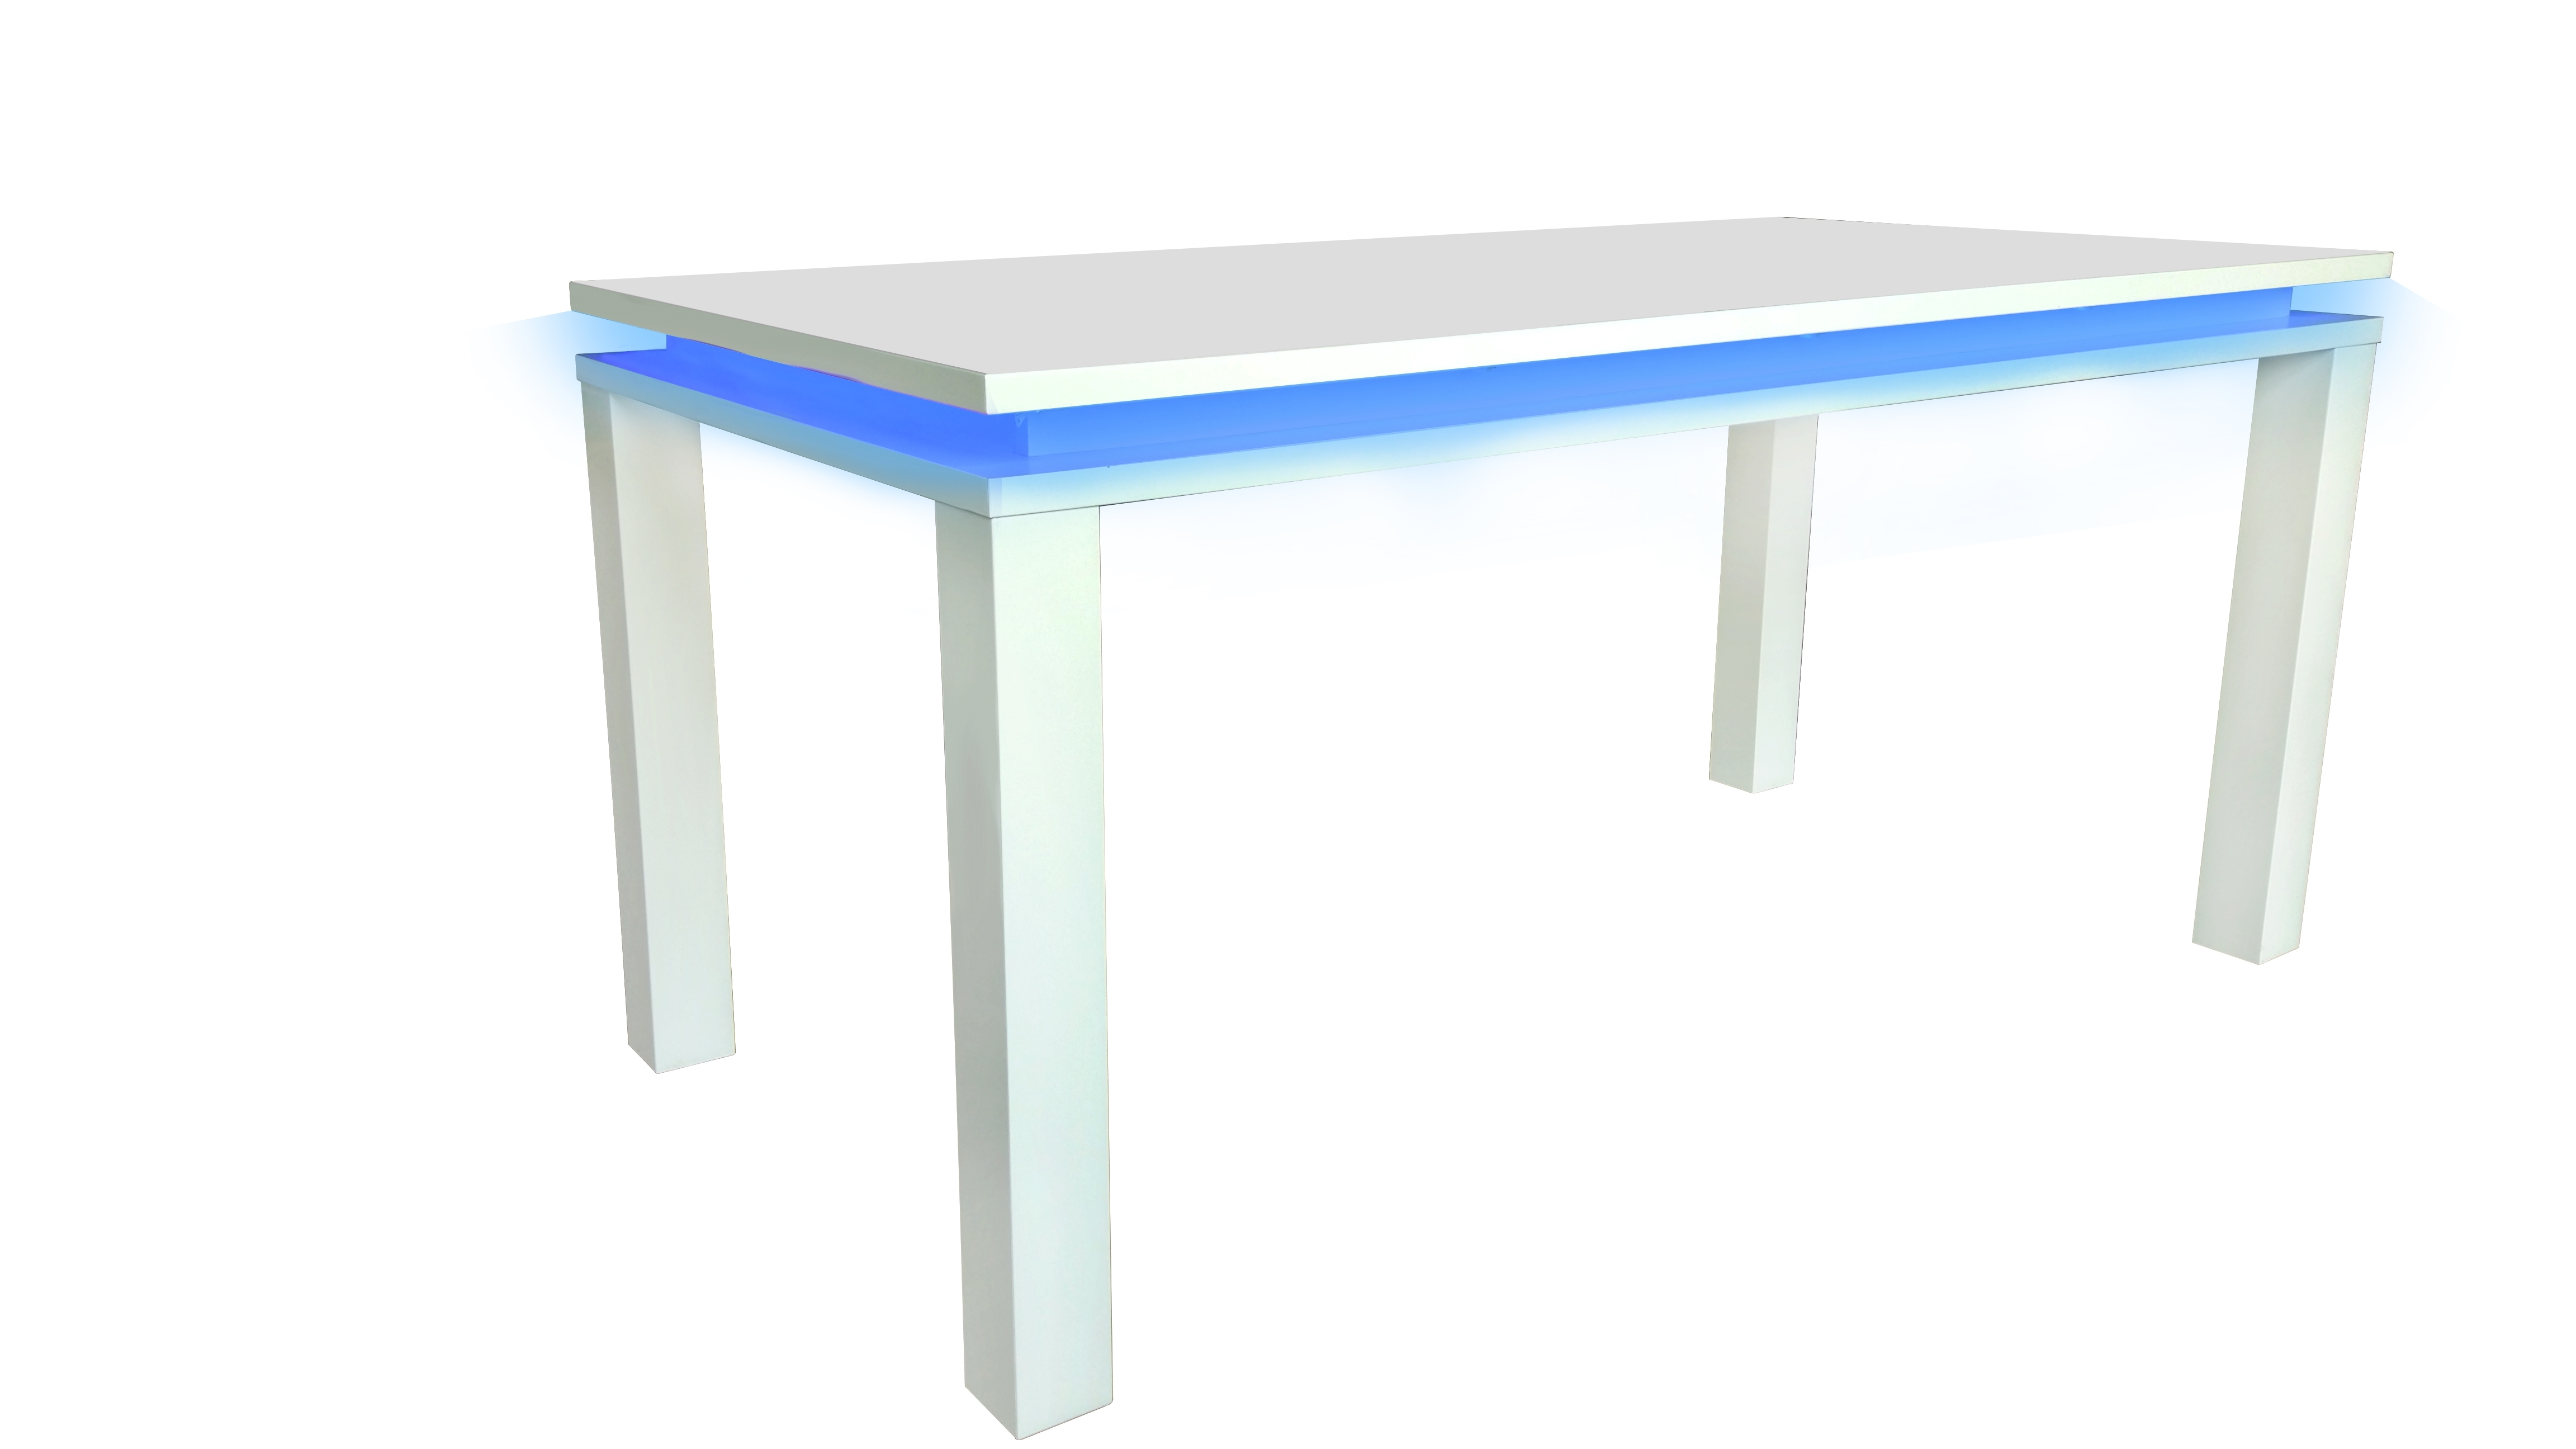 White High Gloss Dining Tables Within 2017 Milano High Gloss Modern Dining Room Table – White Gloss With Blue (View 10 of 25)